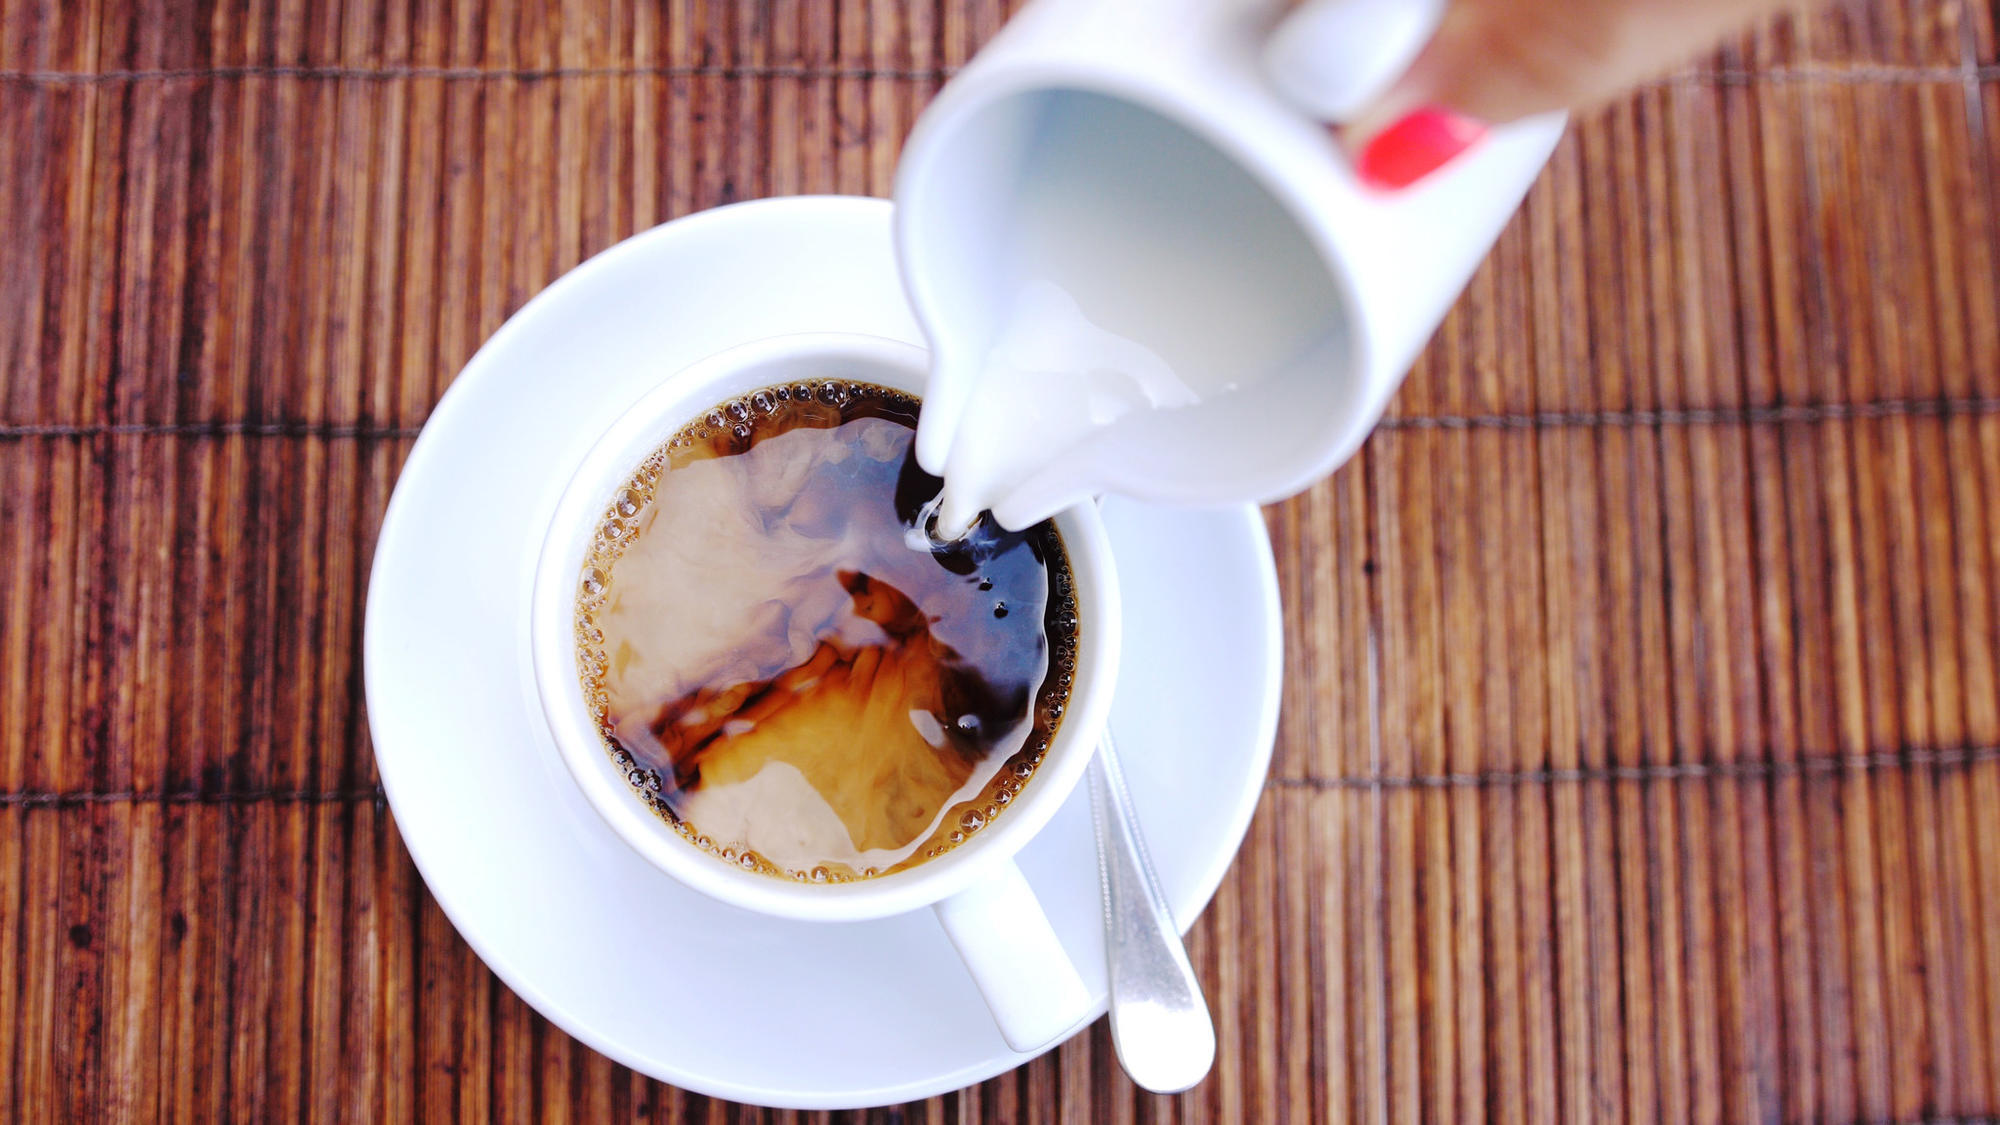 Cream in your coffee? Maybe not. Here's a taste test, from half-and-half to hemp milk